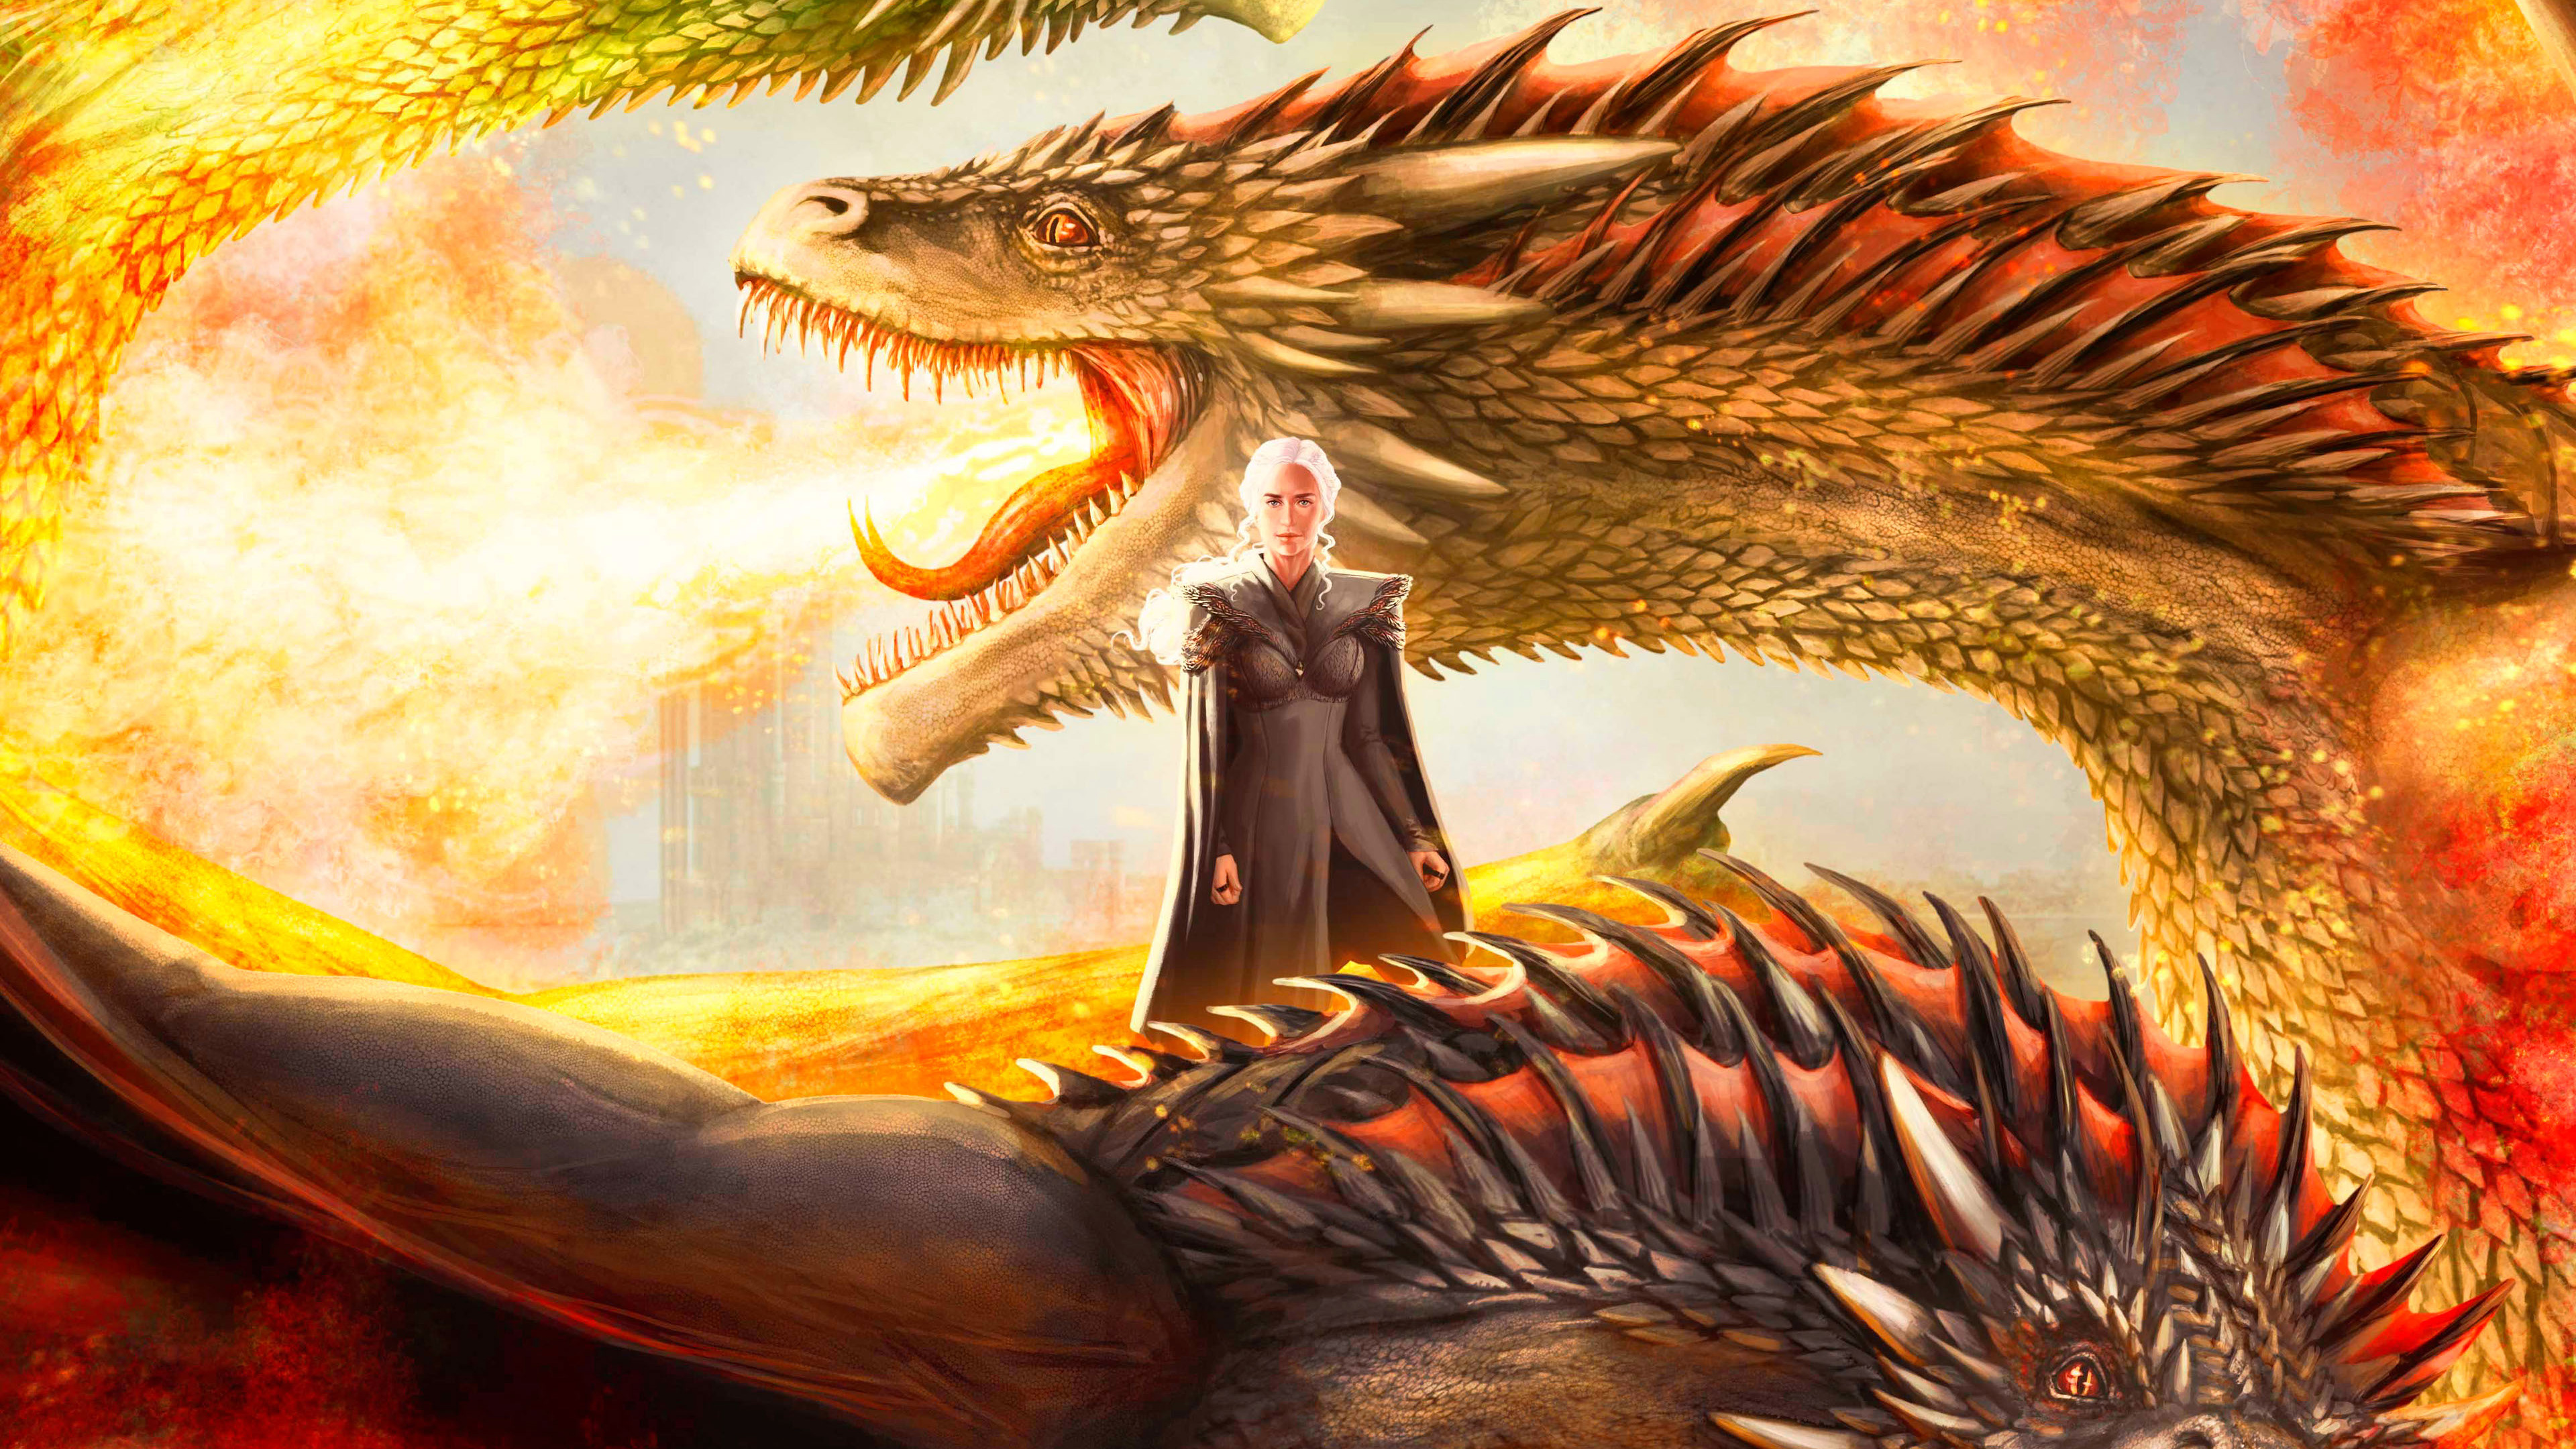 Mother Of Dragons Artwork, HD Tv Shows, 4k Wallpapers ...